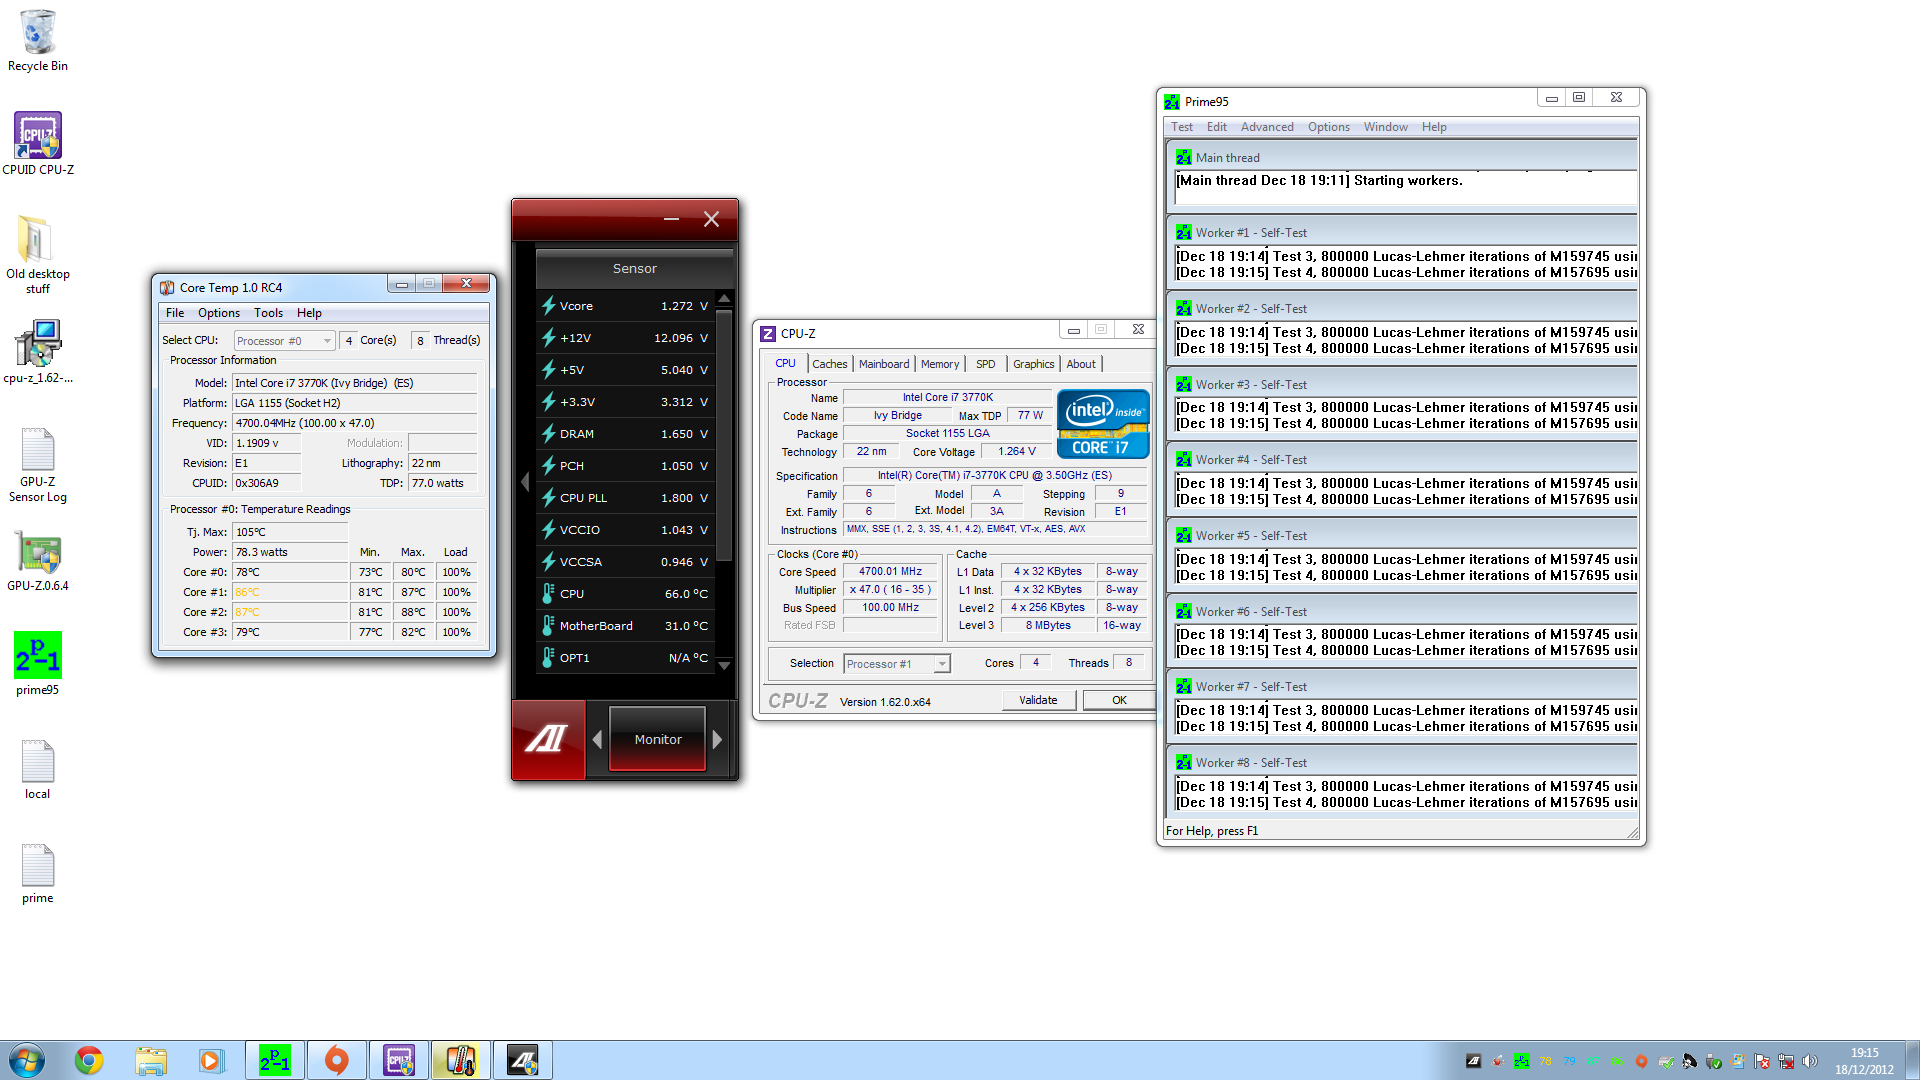 overclocking guide 4 7ghz core i7 3770k on the maximus v formula rh rog asus com Asus ROG Maximus III Water Cooling Asus Maximus VI